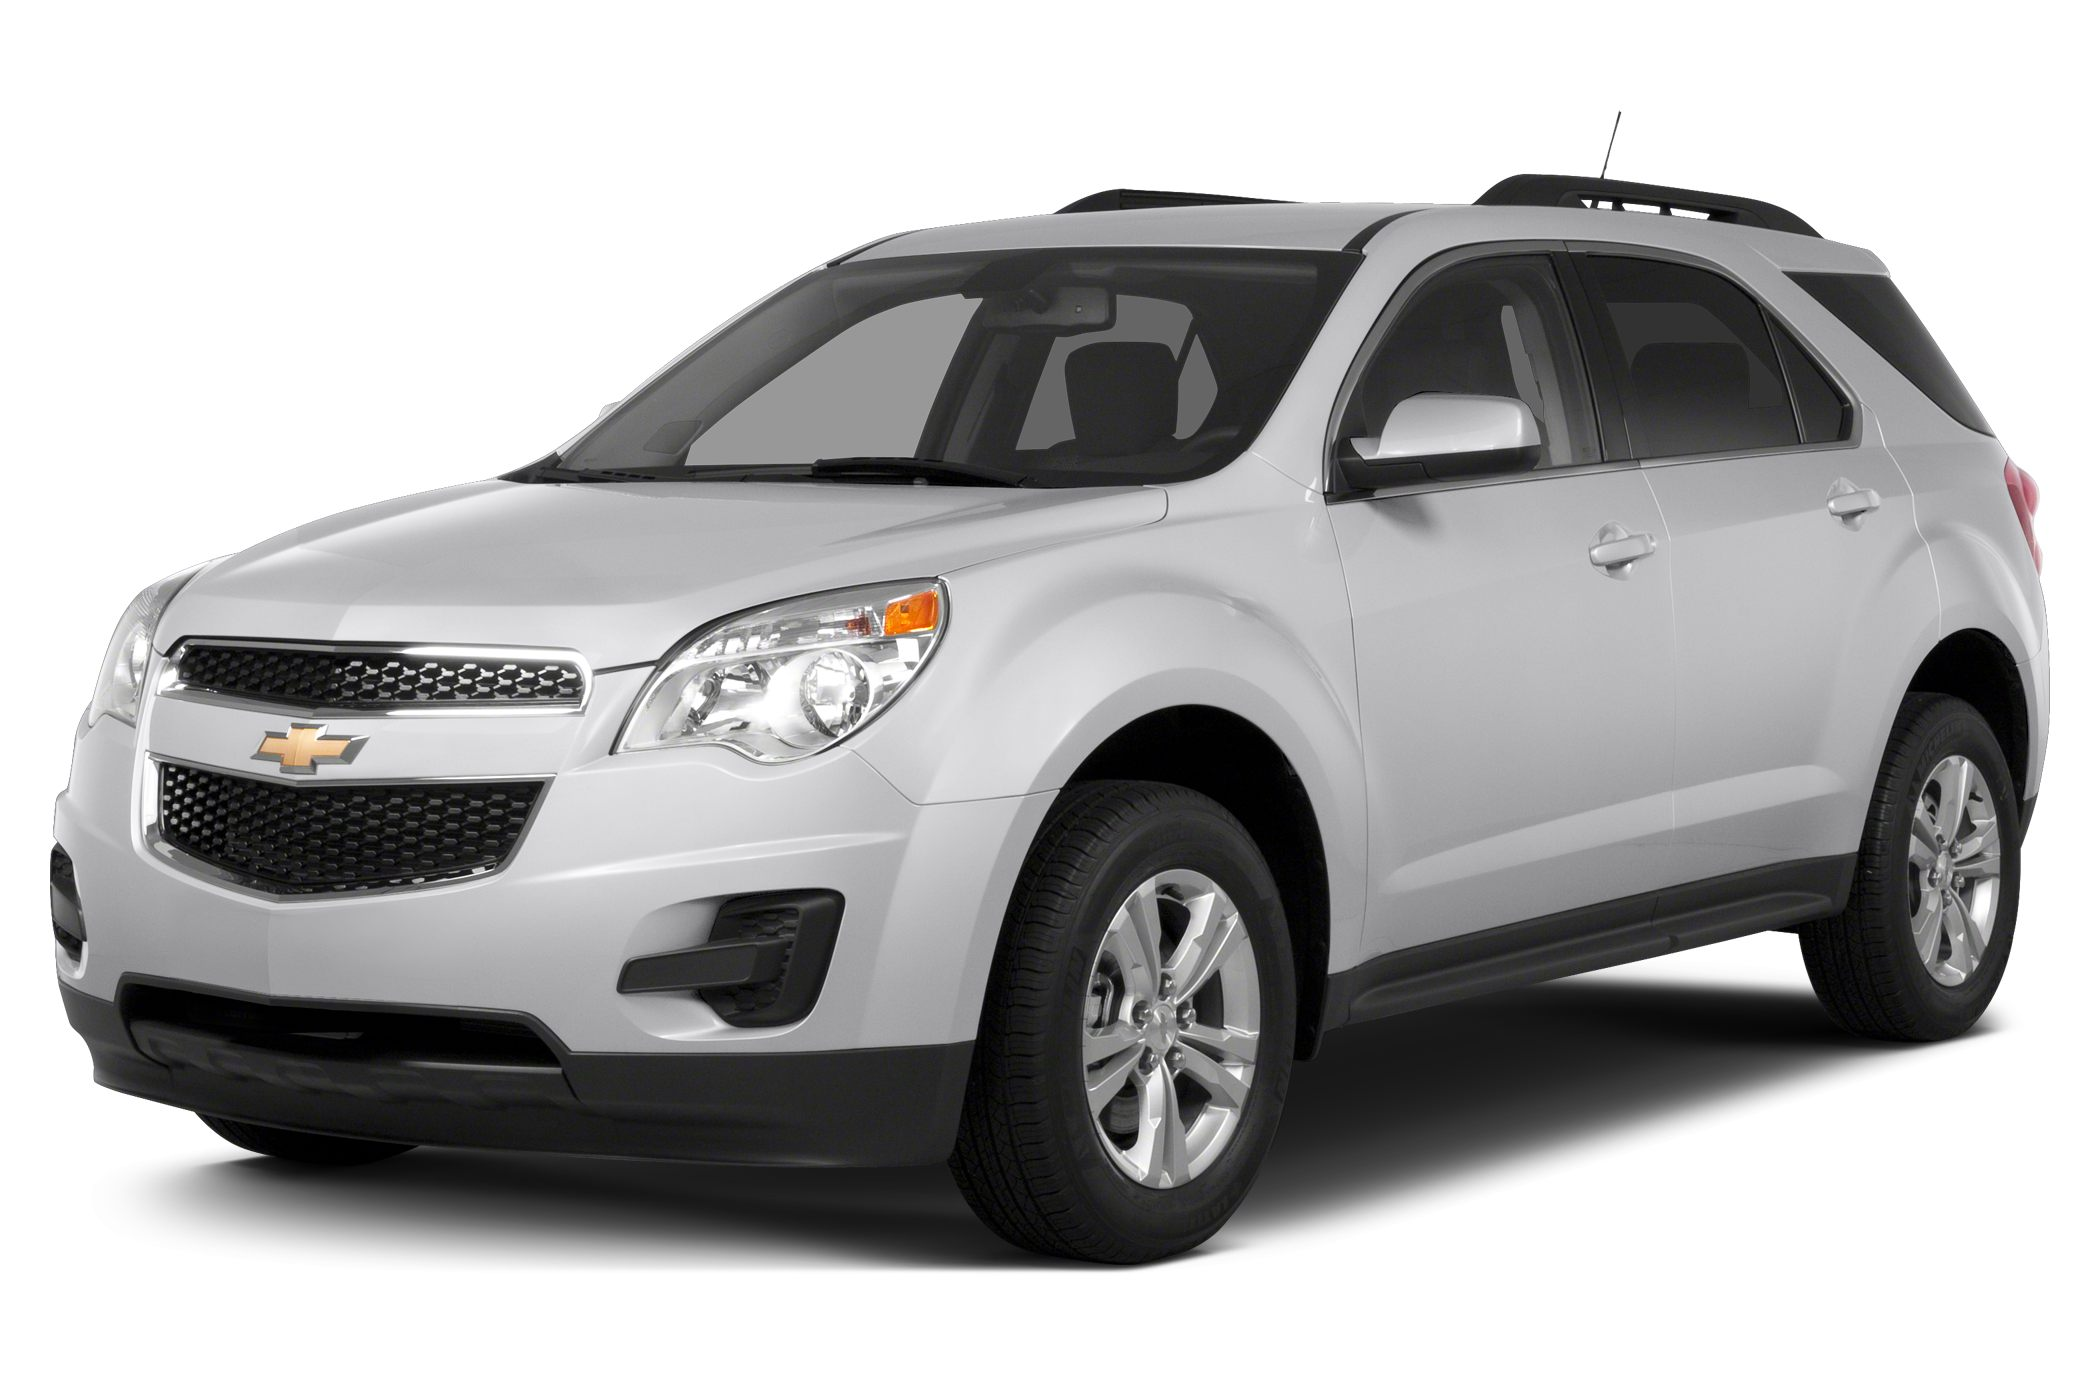 2015 Chevrolet Equinox 1LT SUV for sale in Mentor for $29,700 with 0 miles.